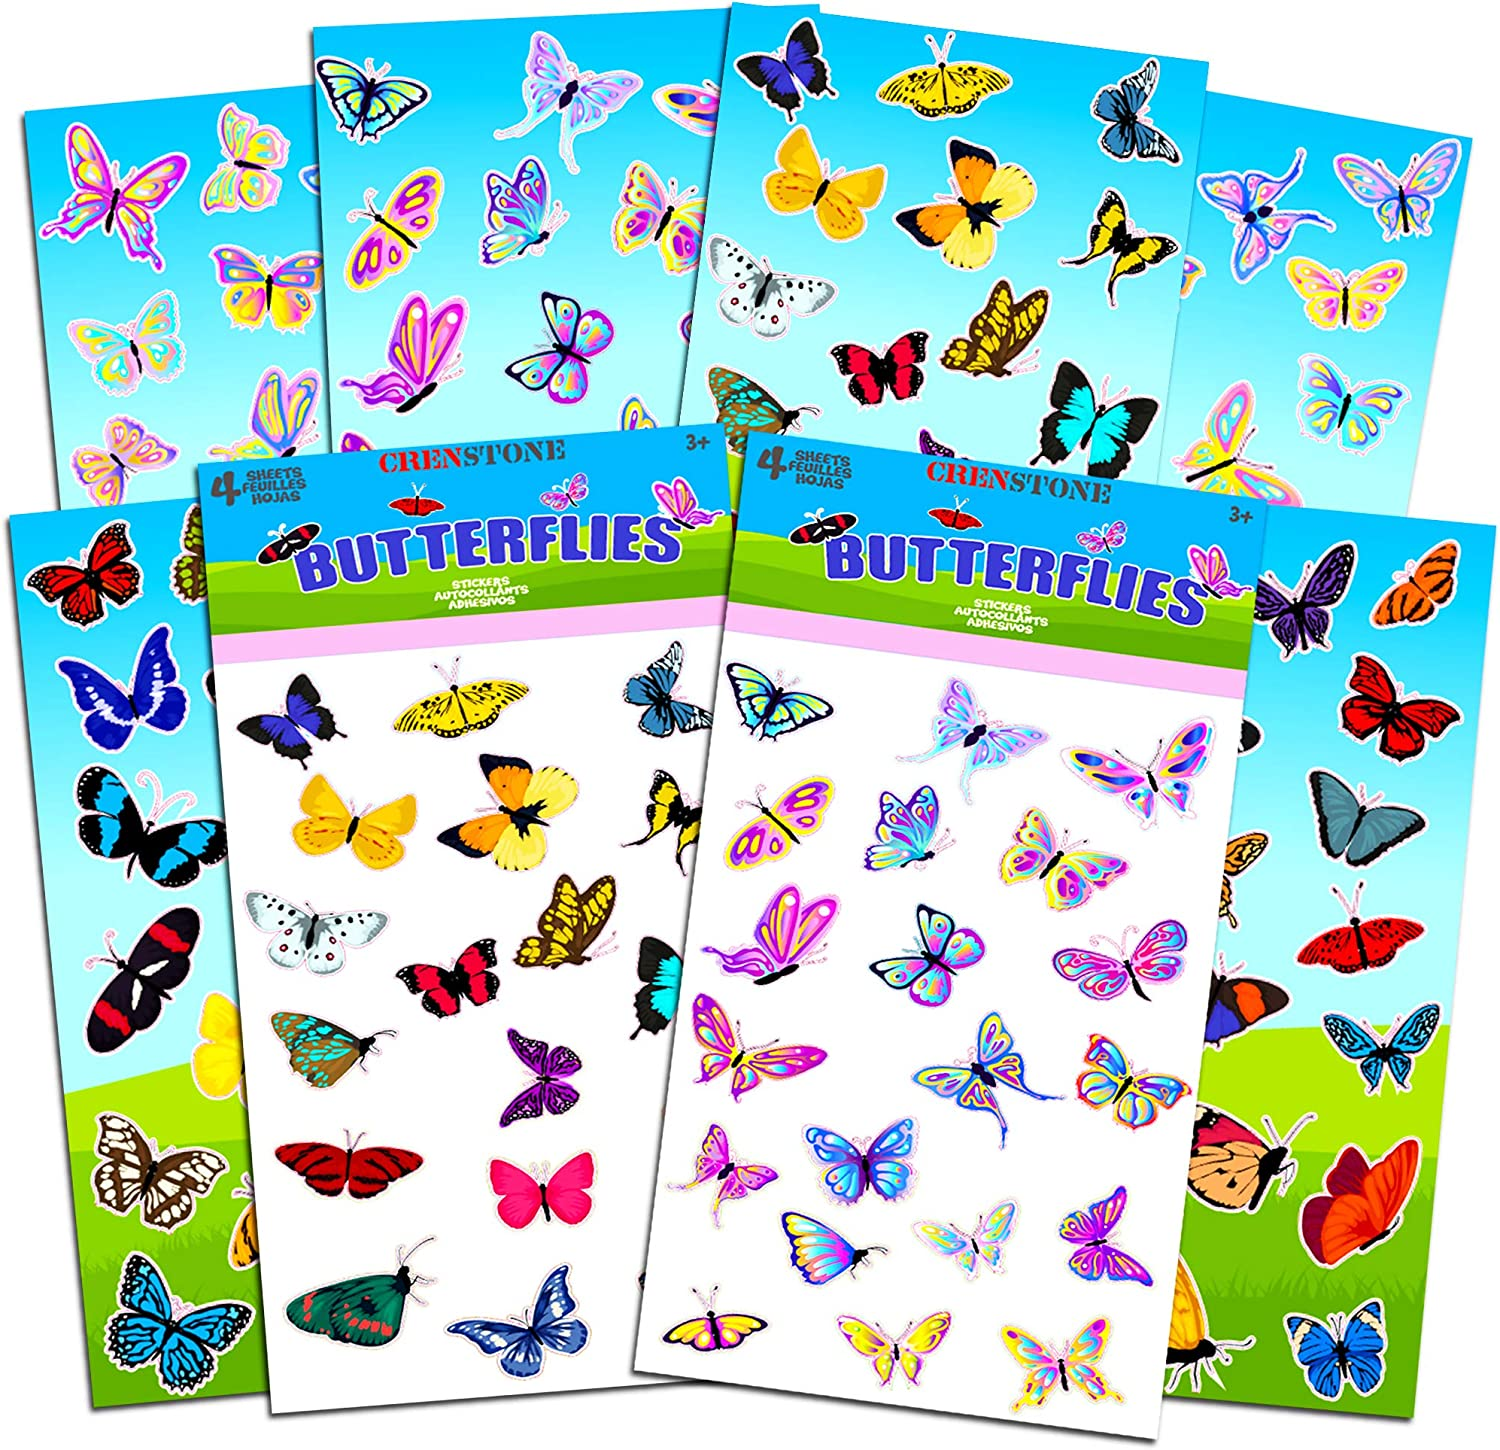 Butterflies Stickers Party Supplies Pack Girls Kids Toddlers Adults - Over 160 Stickers (Party Favor Craft Scrapbooking Adhesive Sticker Sheets)